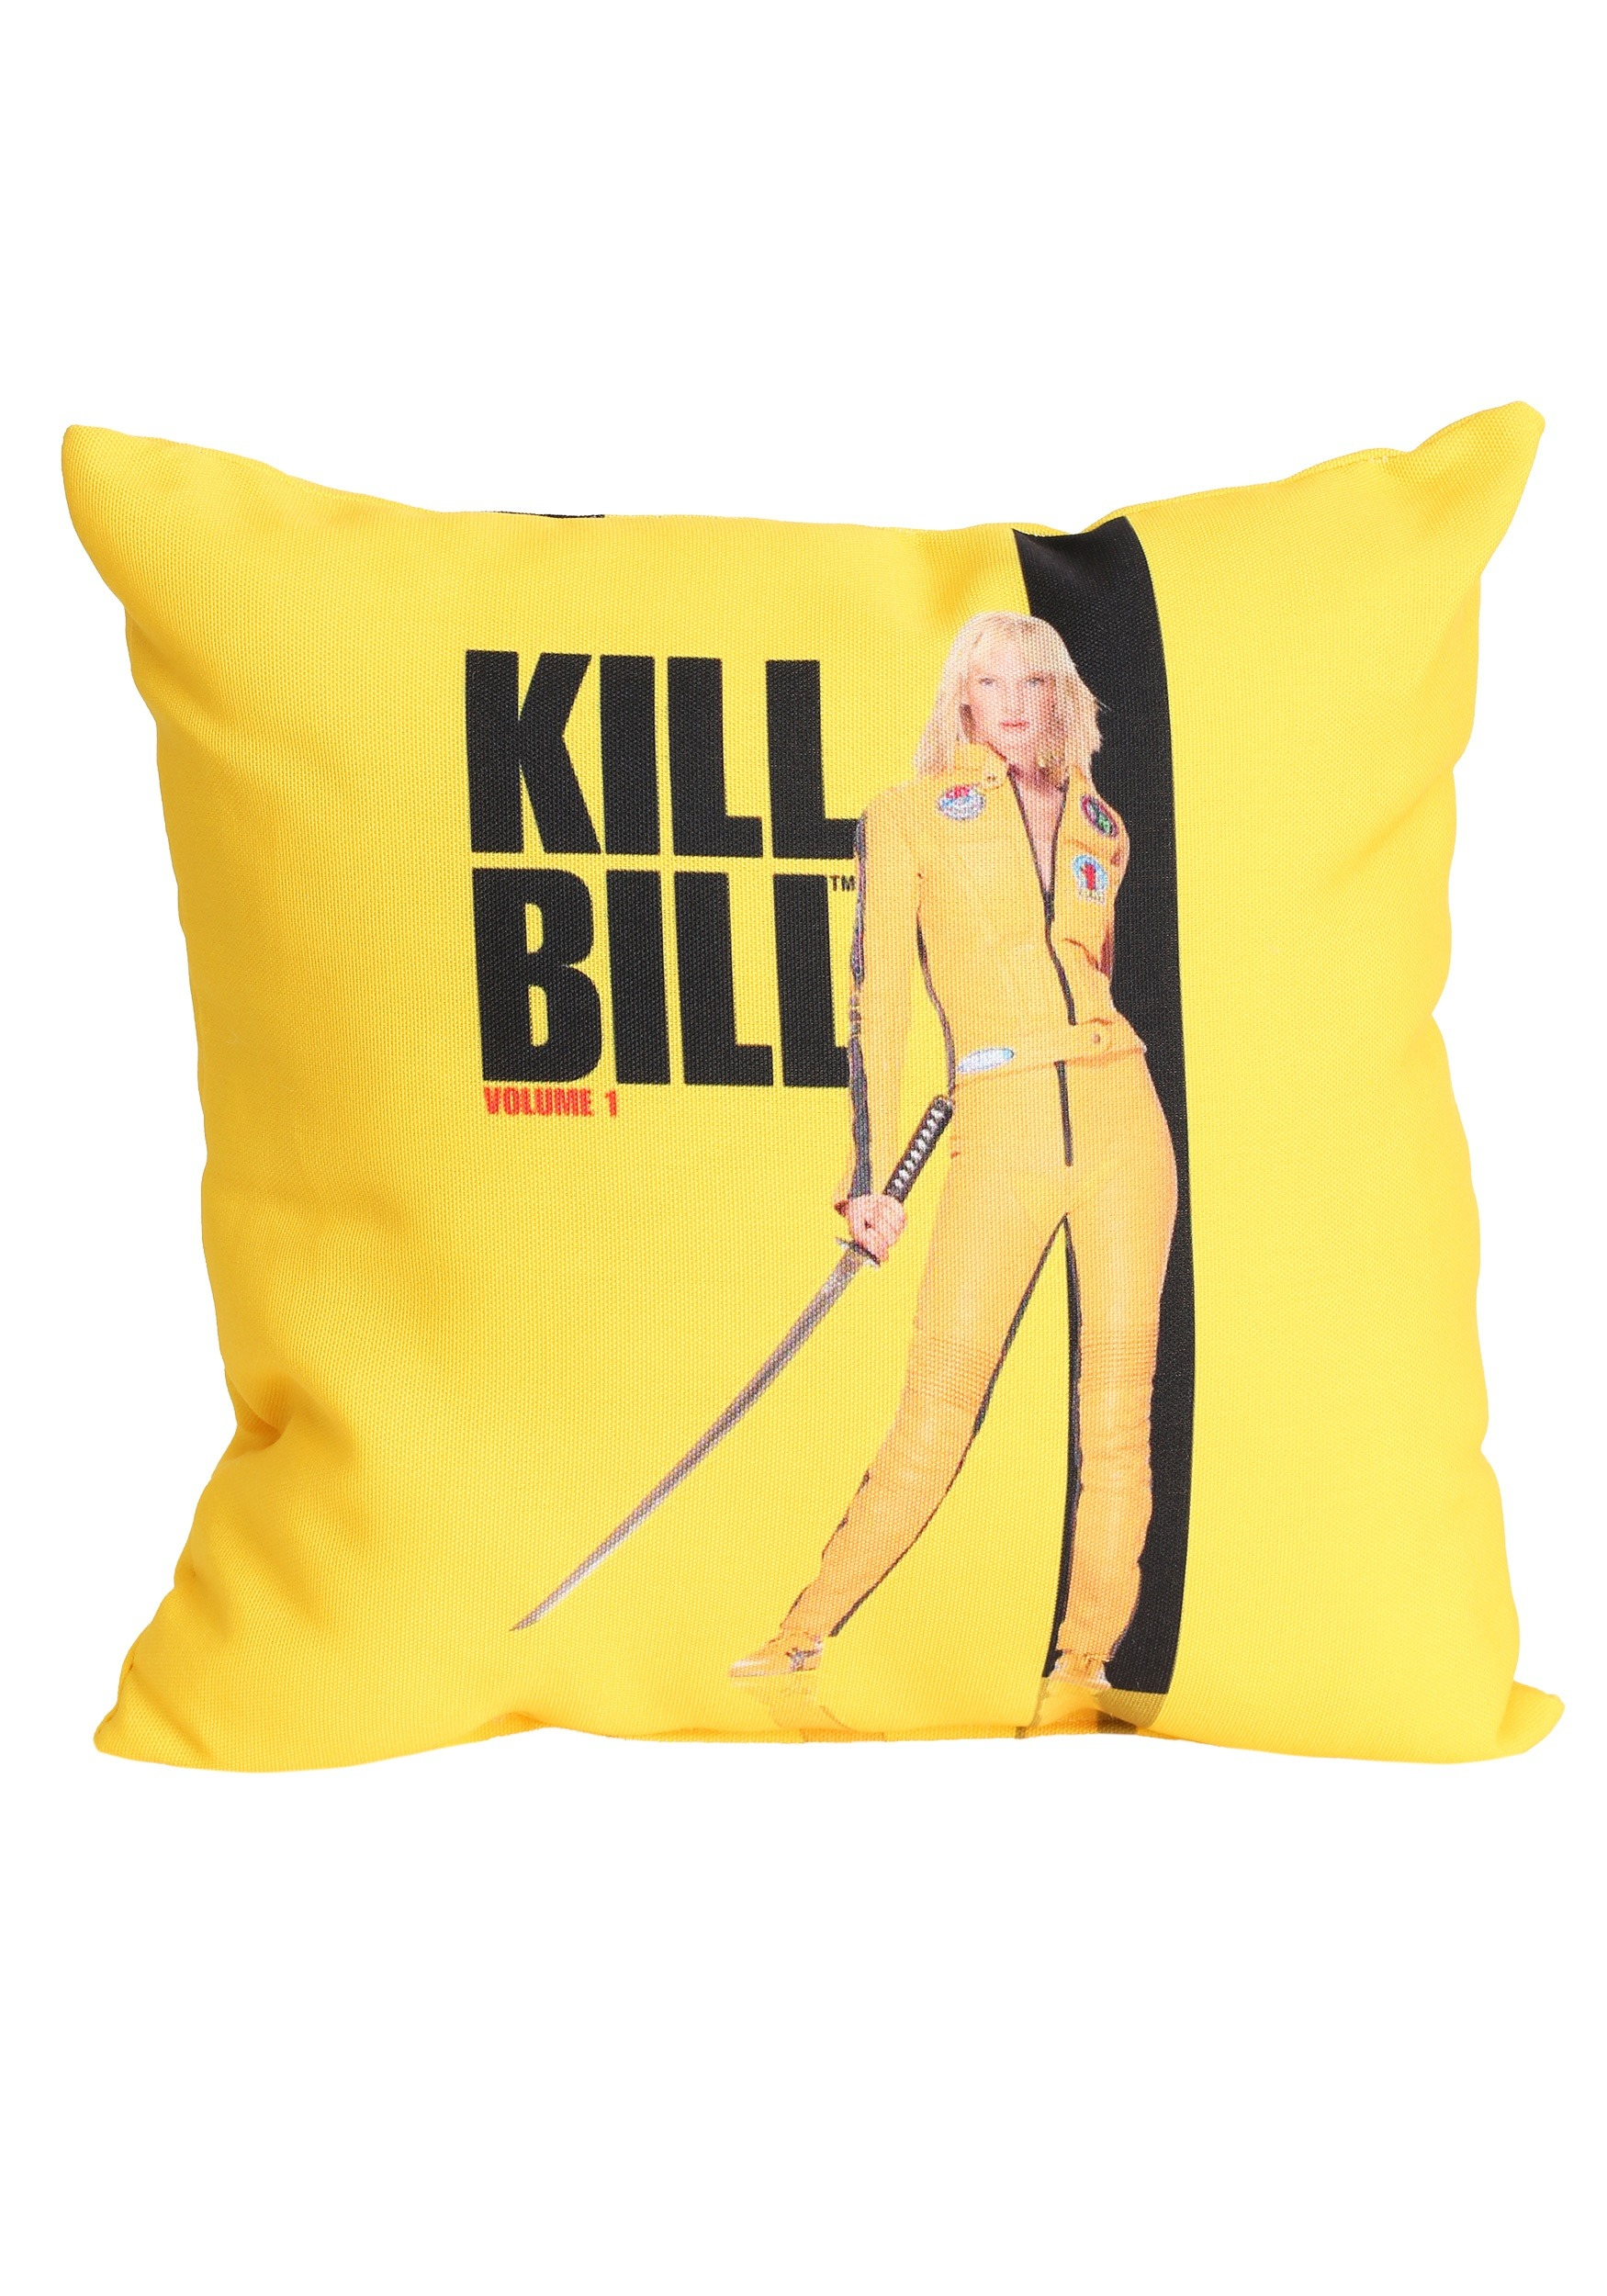 Kill Bill Volume 1 Poster 14 x14 Throw Pillow